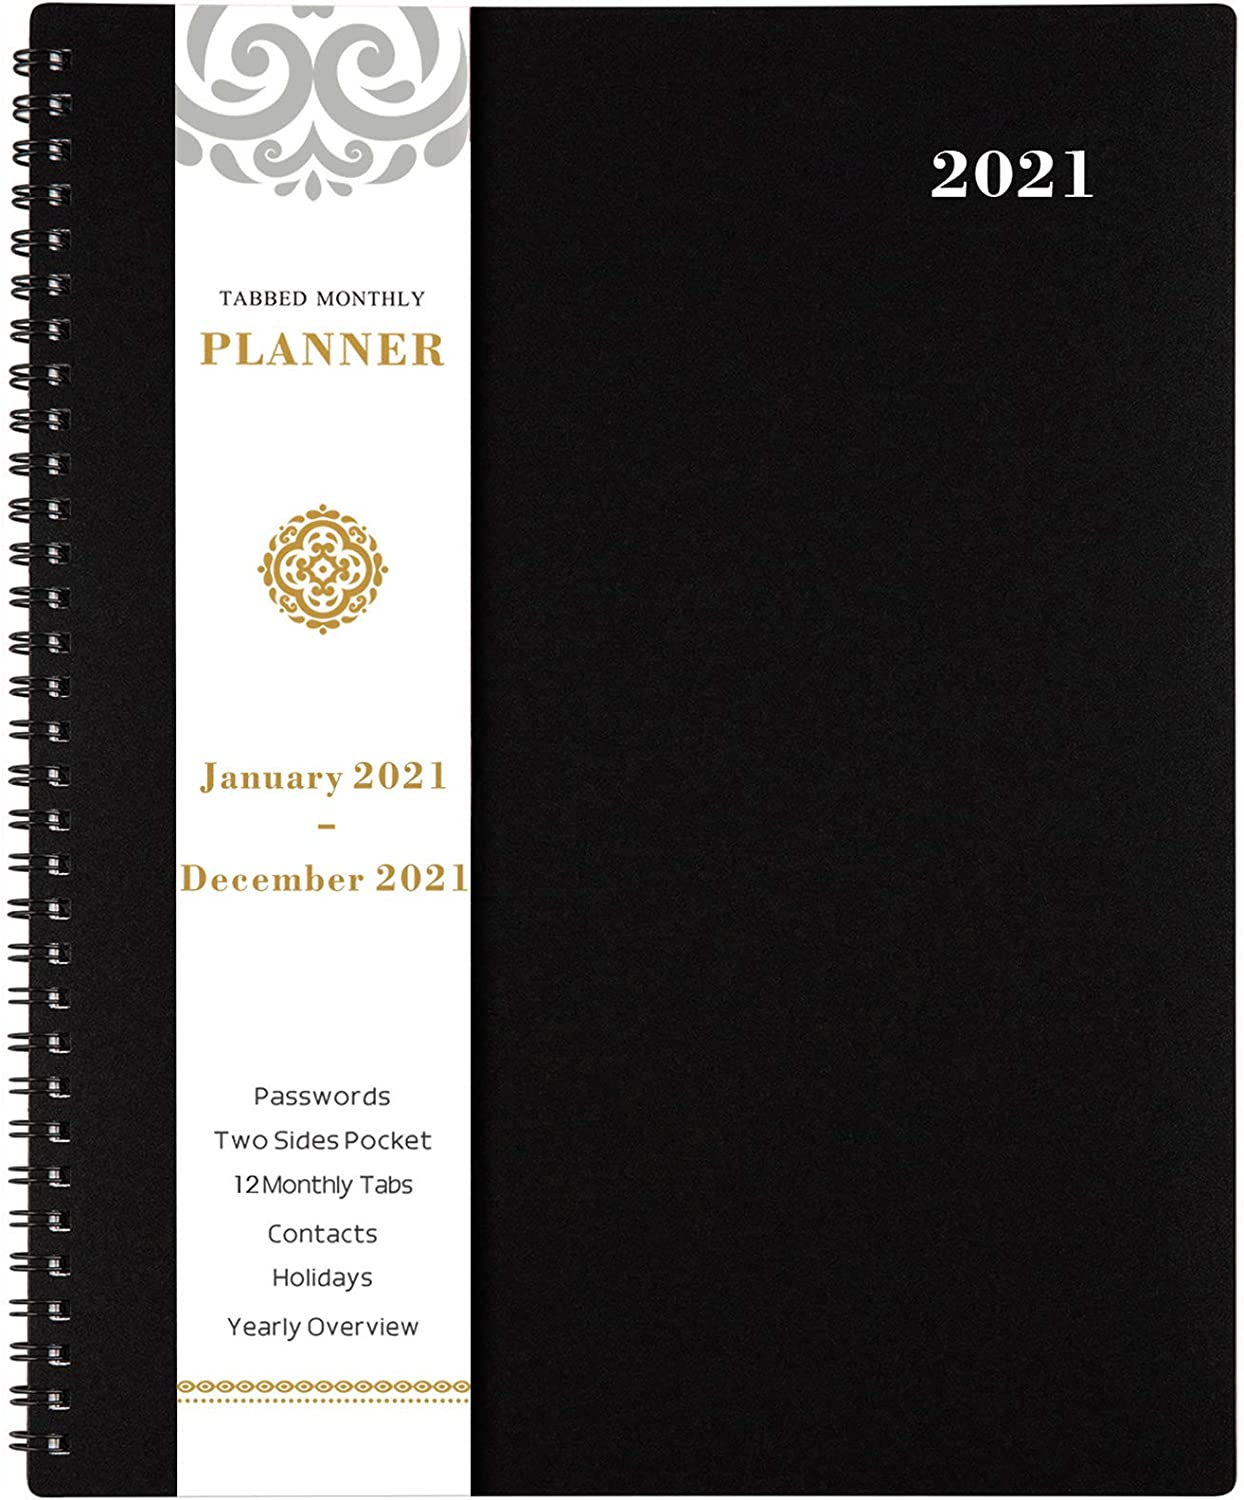 """2021 Monthly Planner - 12-Month Planner with Tabs & Pocket & Label, Contacts and Passwords, 8.5"""" x 11"""", Thick Paper, Jan. - Dec. 2021, Twin-Wire Binding - Black by Artfan : Office Products"""